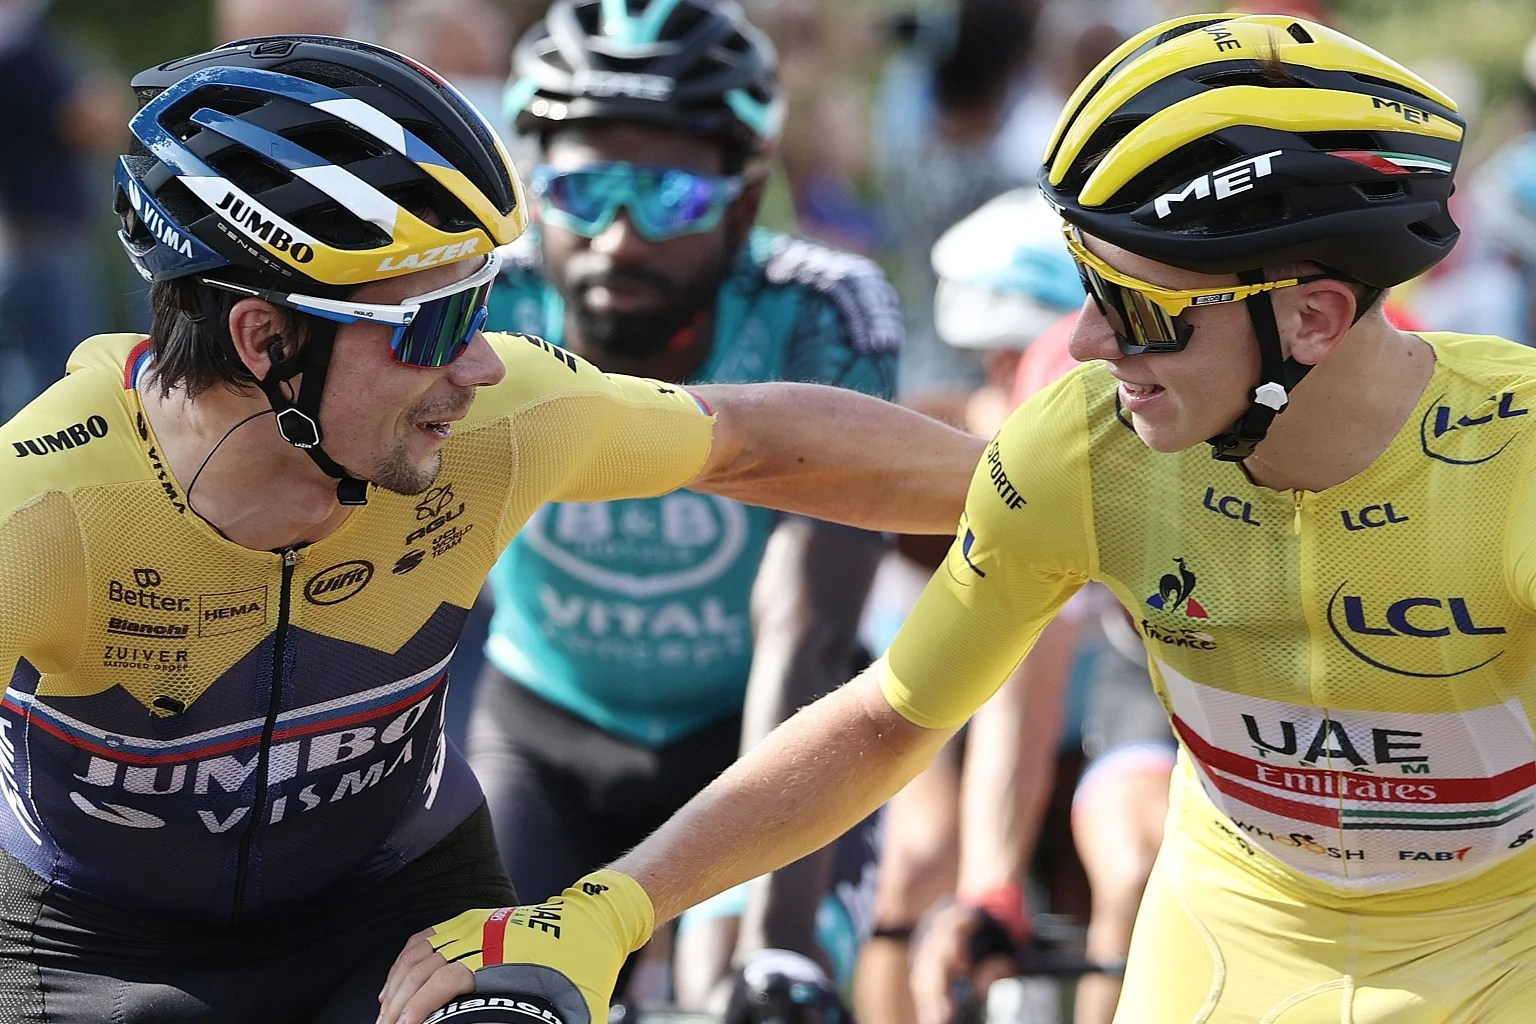 collapse leaves roglic in search for